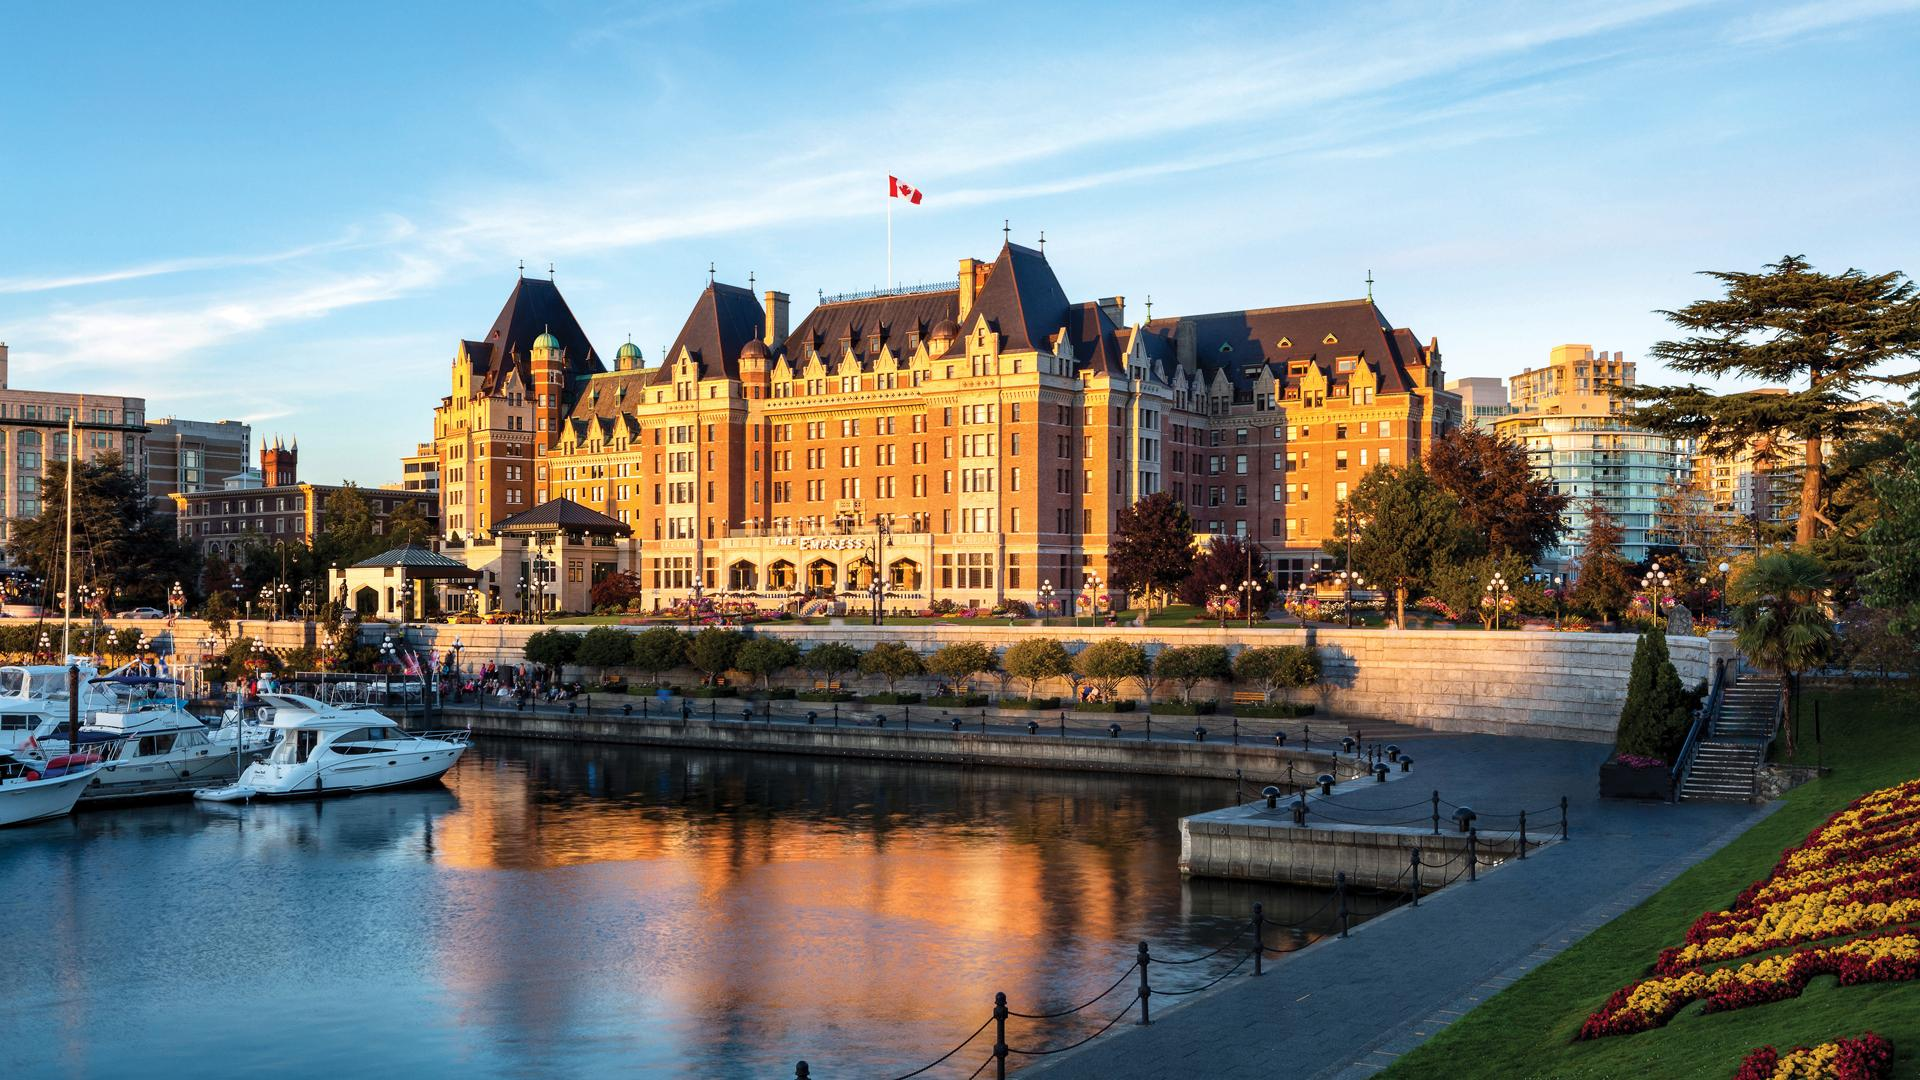 Where to have high tea in Victoria, B.C.: The Fairmont Empress hotel